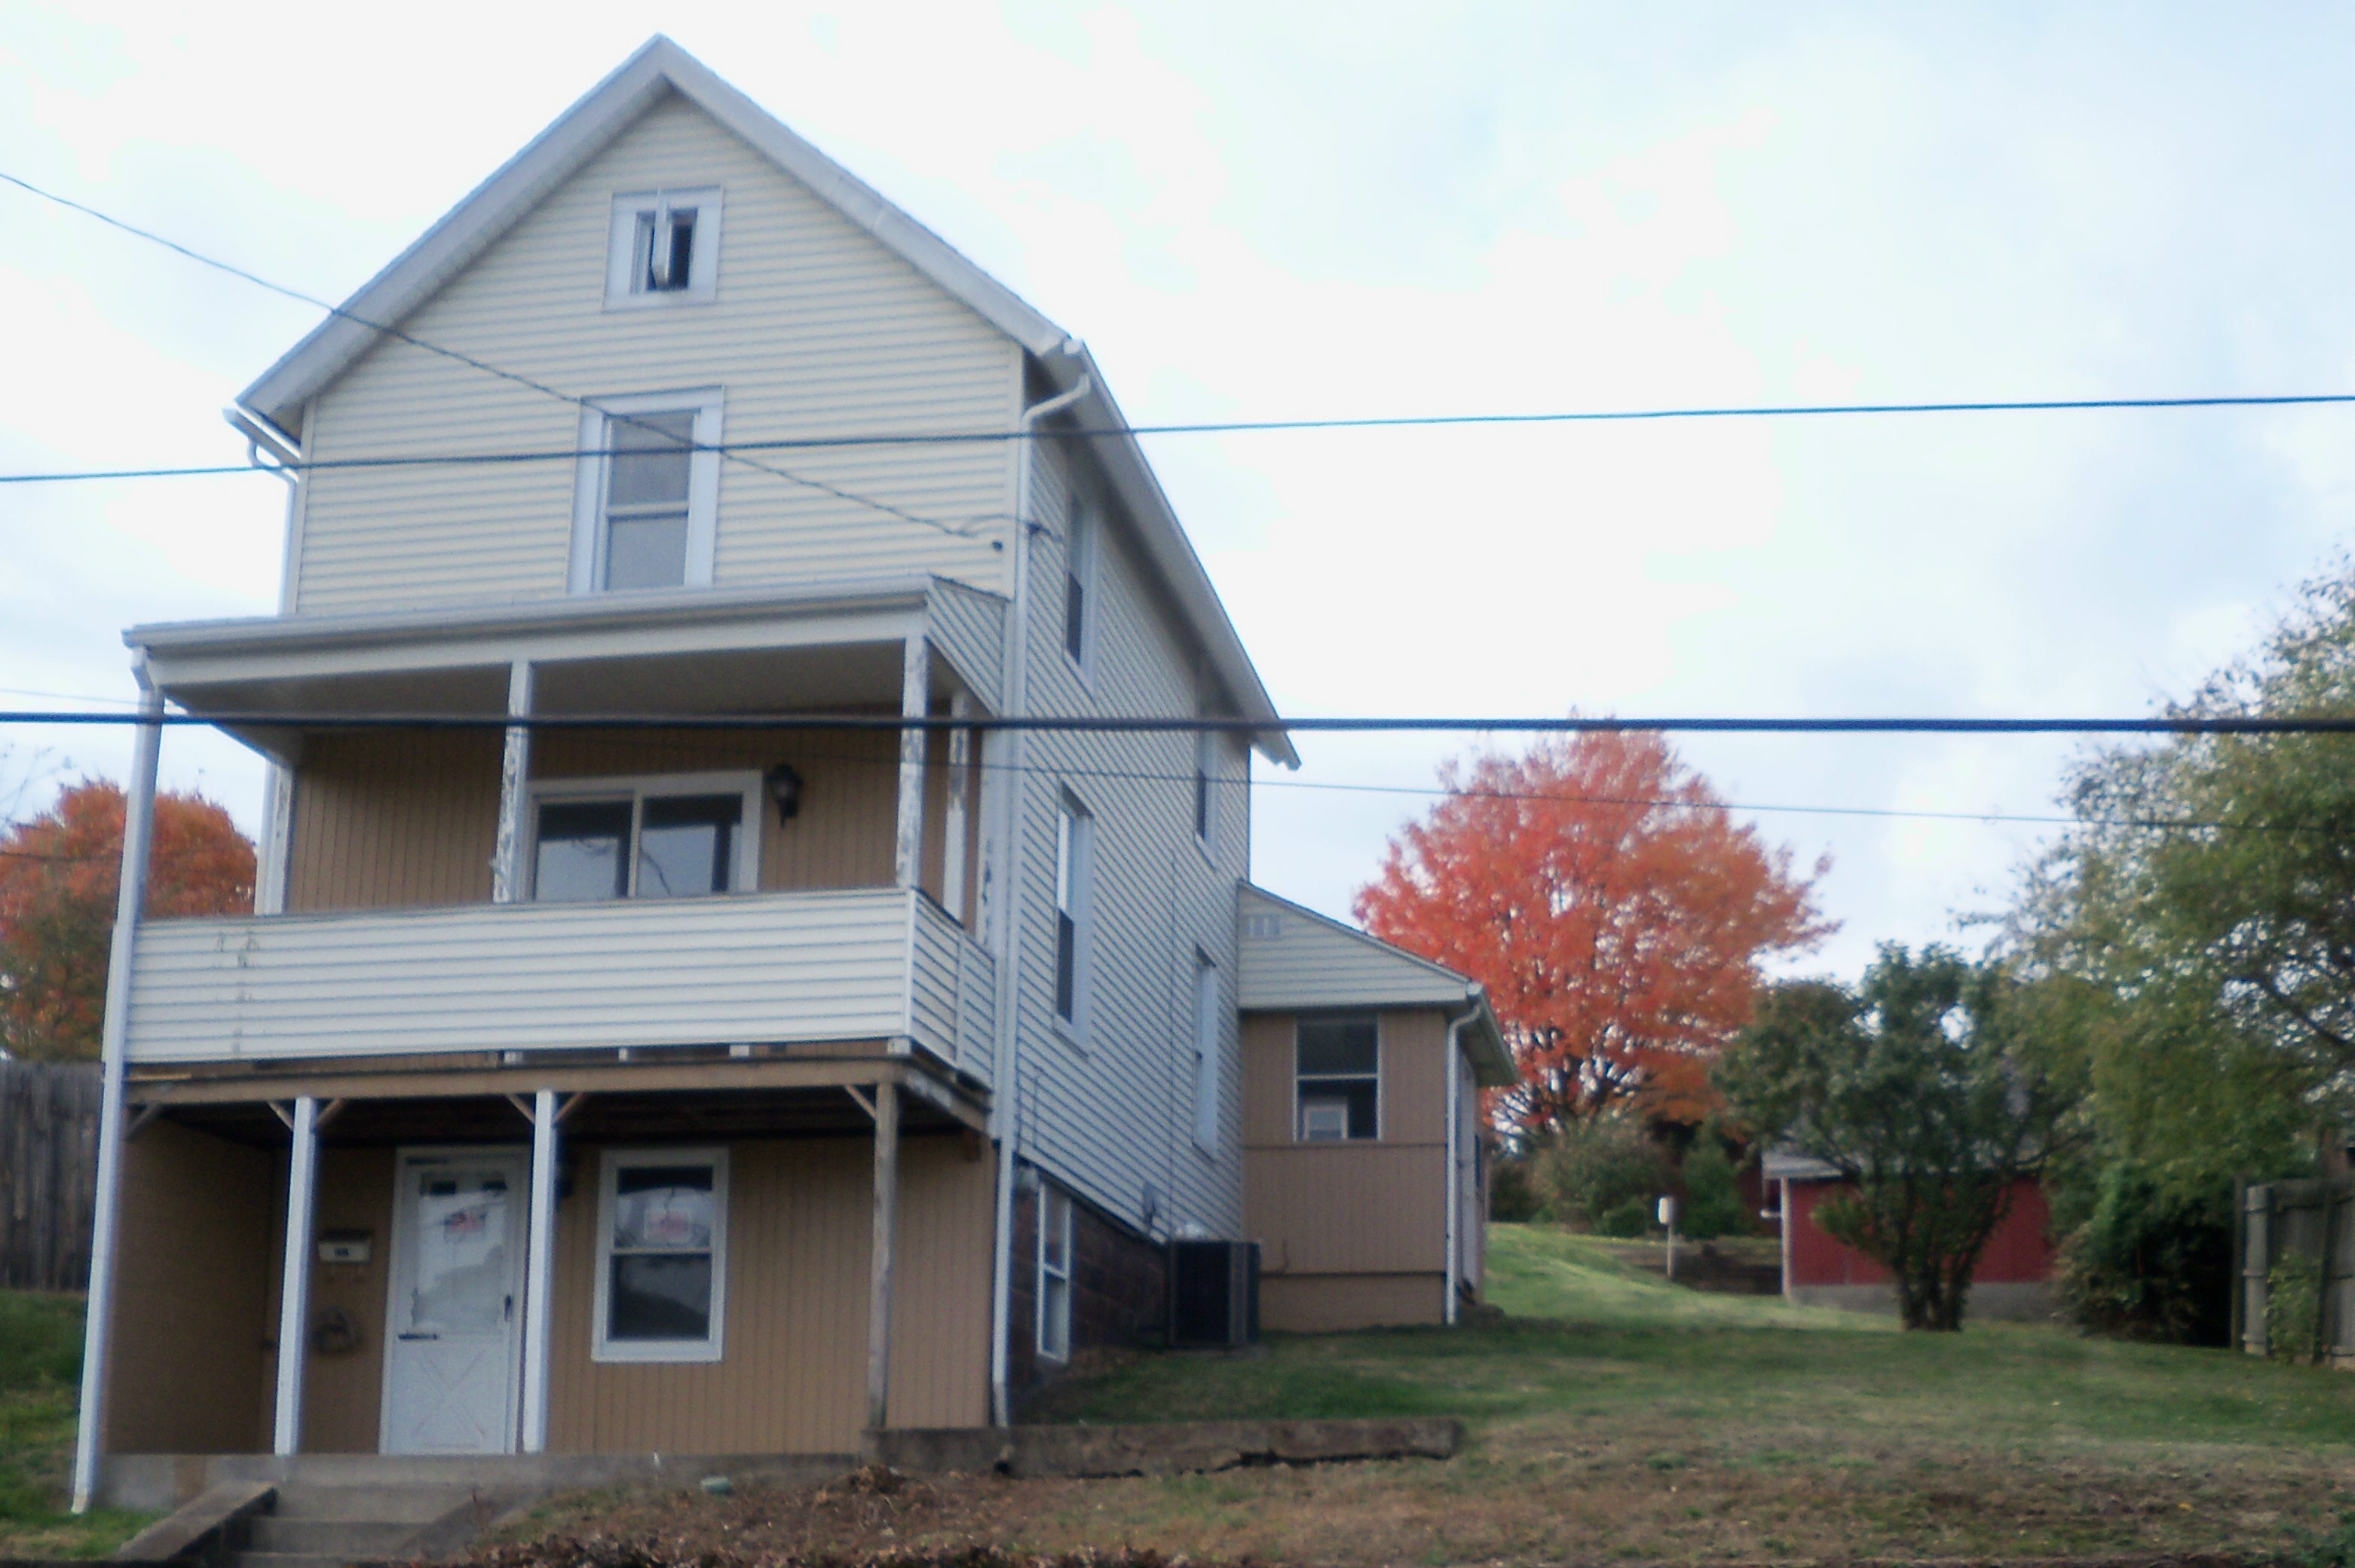 207 S FIFTH ST, Youngwood, Pennsylvania 15697